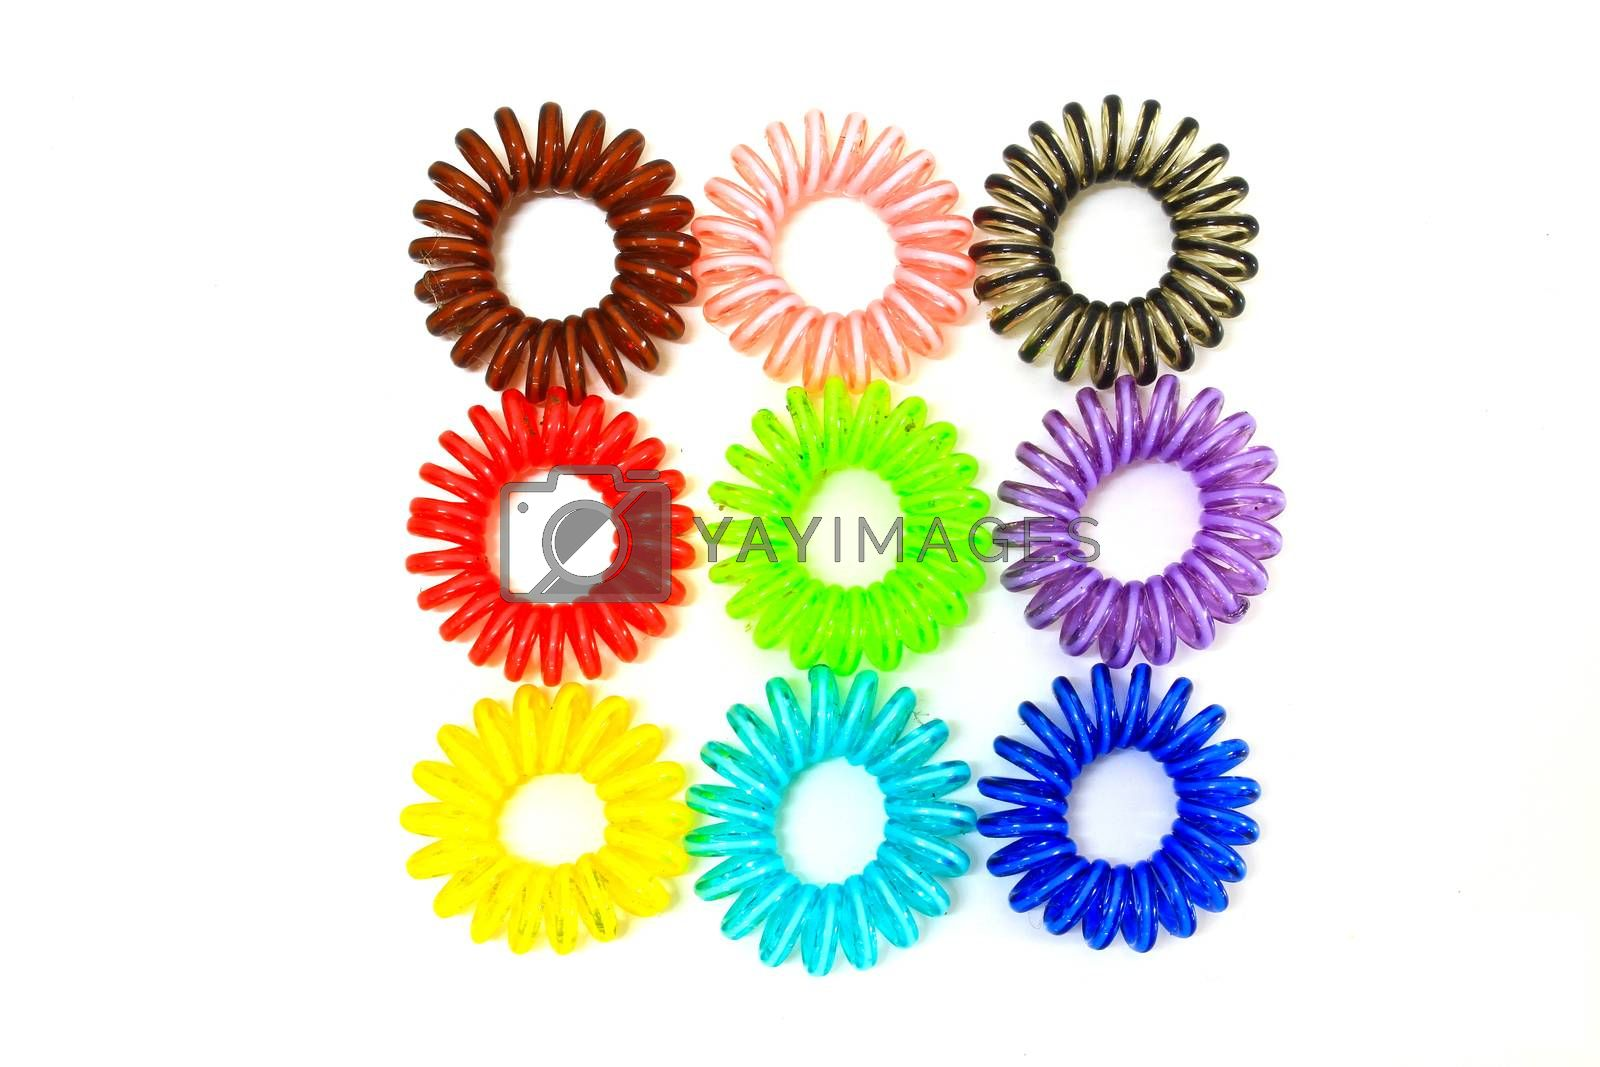 Royalty free image of Colorful Spiral Elastic Hair Ties by forest71